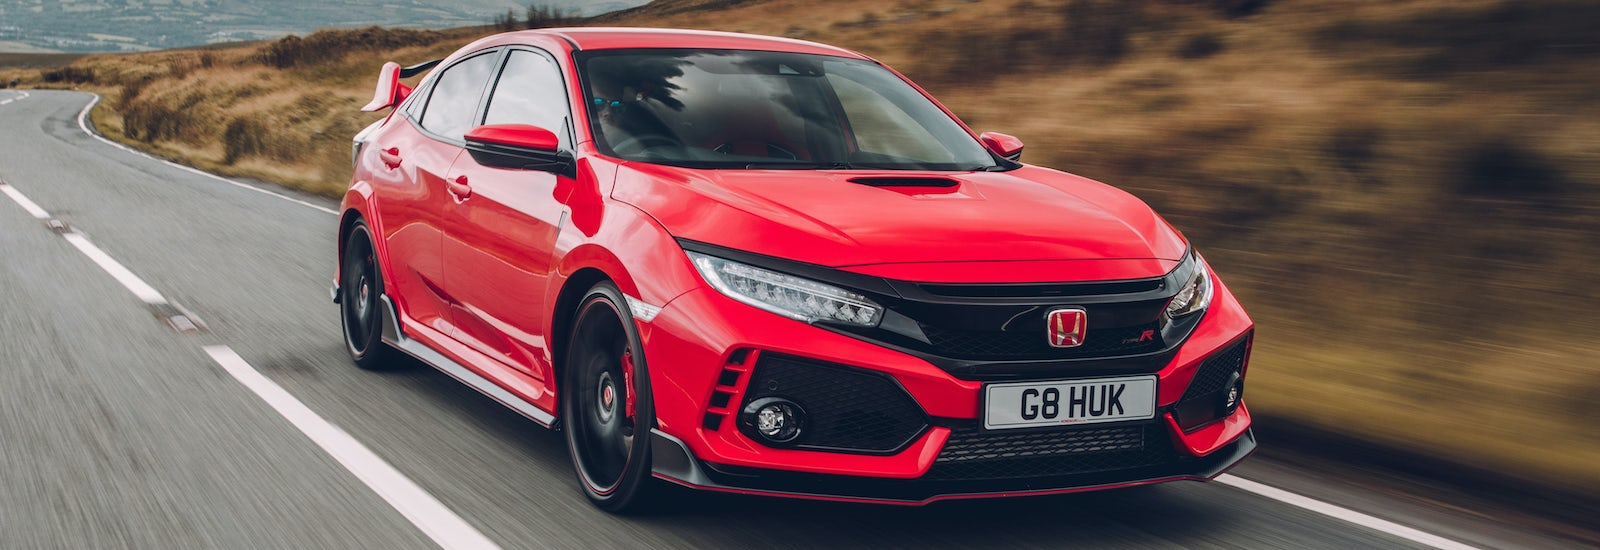 The best sports cars on sale carwow for 2018 honda civic type r 0 60